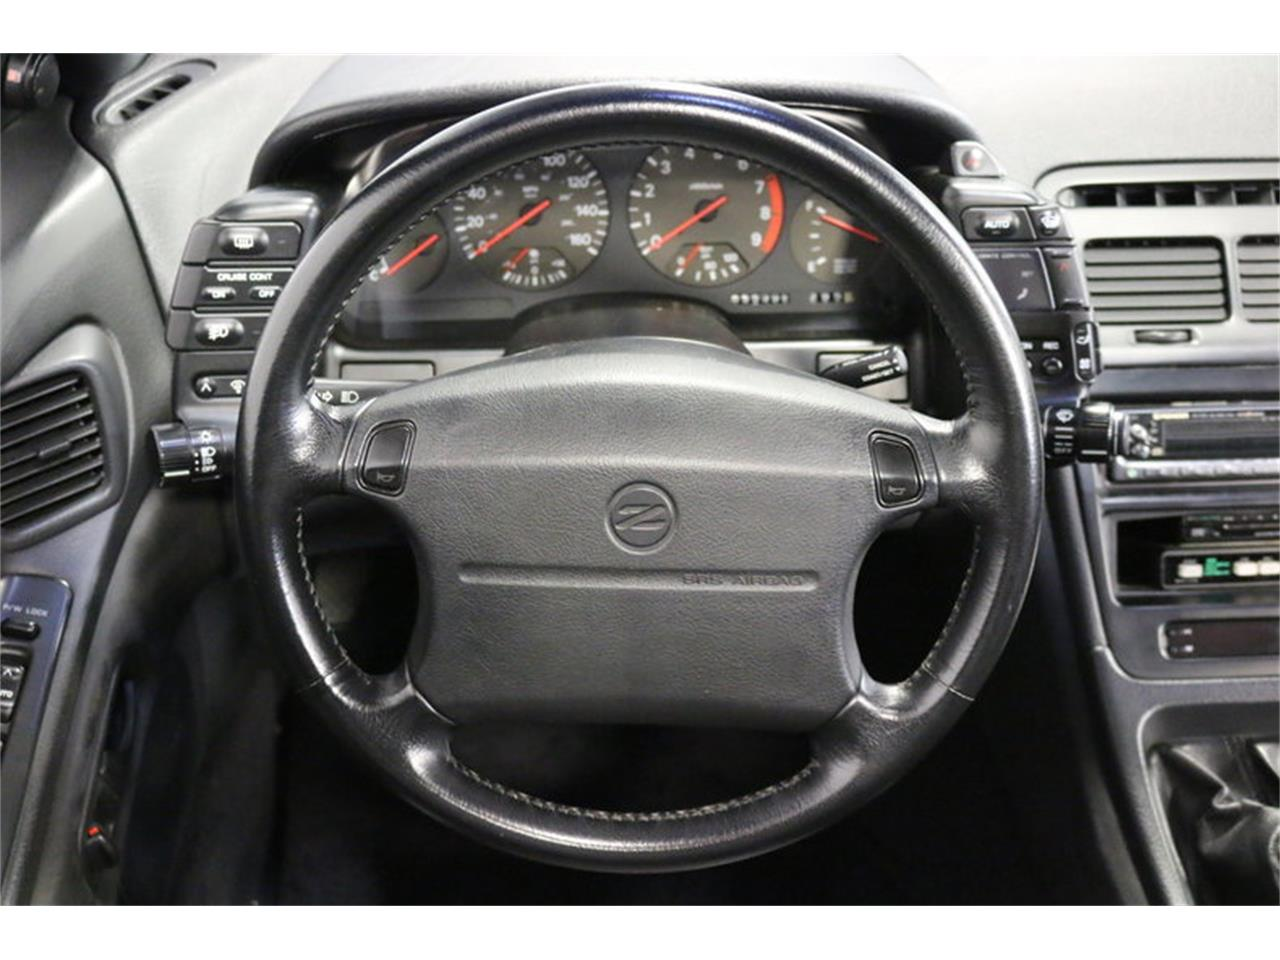 Large Picture of '95 300ZX located in Texas Offered by Streetside Classics - Dallas / Fort Worth - NIW7